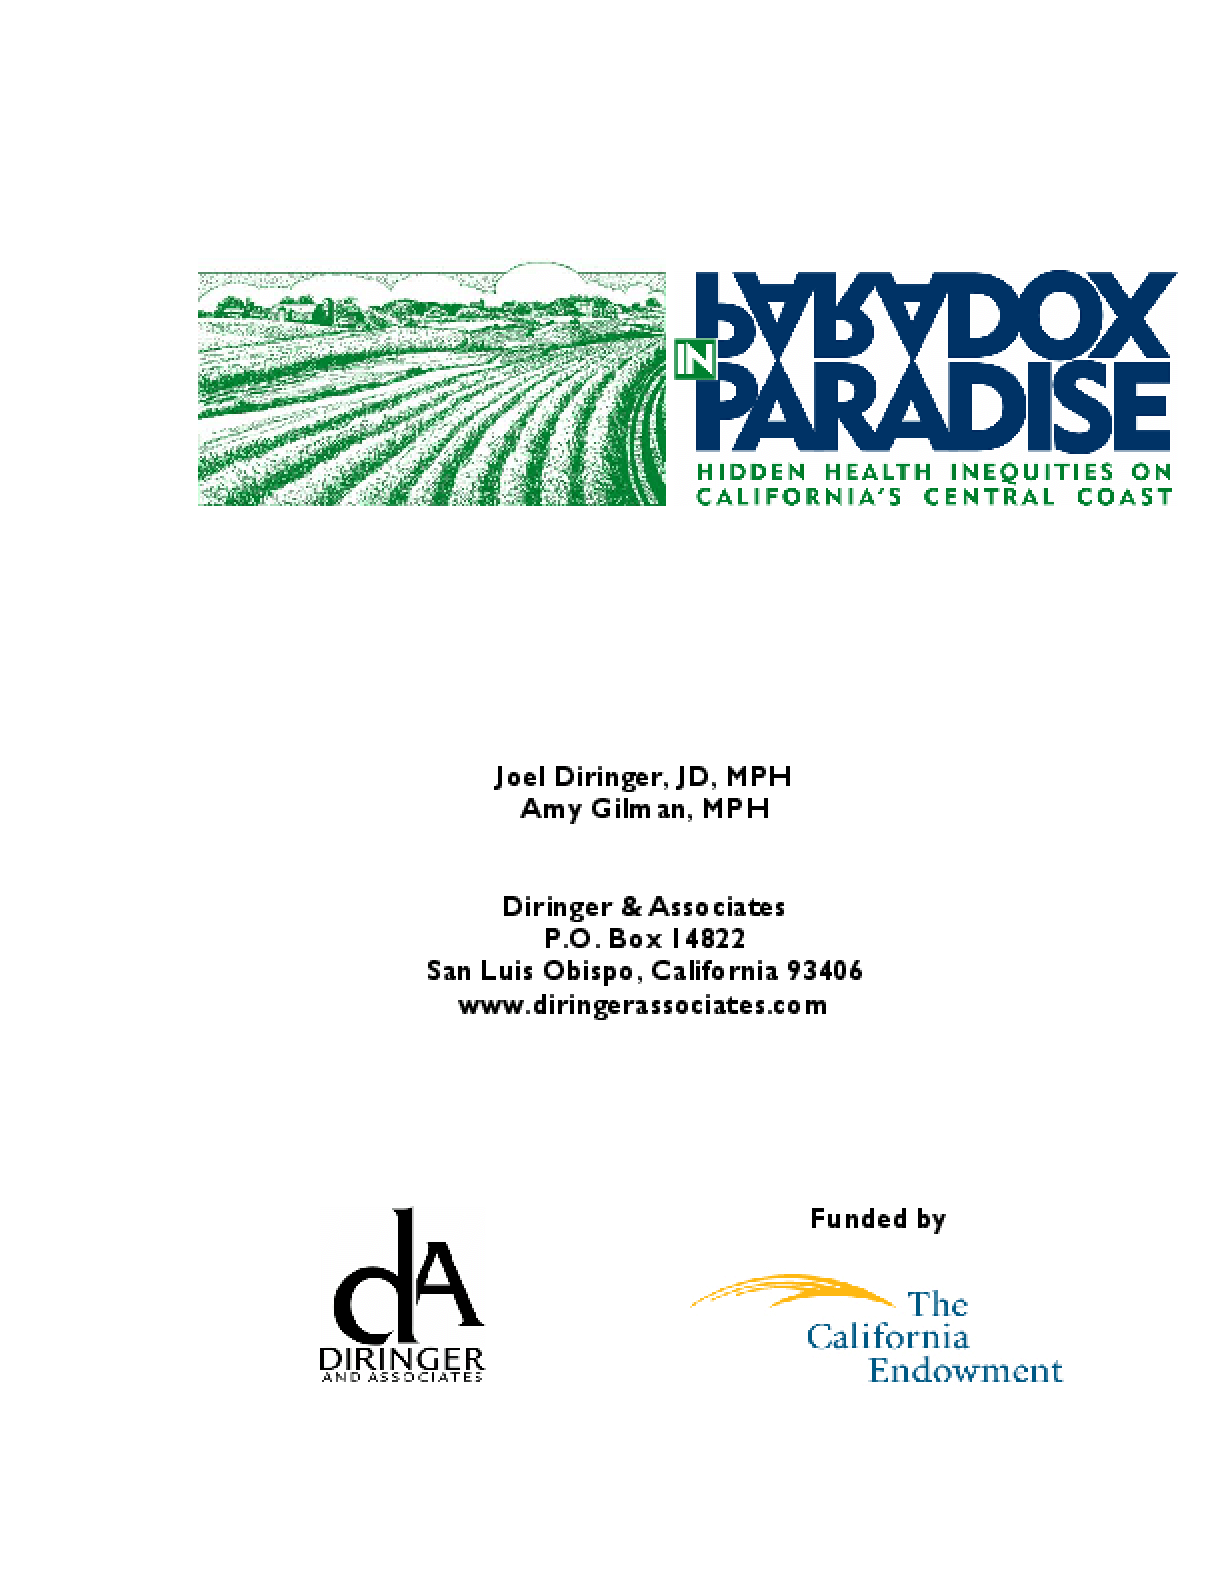 Paradox in Paradise: Hidden Health Inequities on California's Central Coast